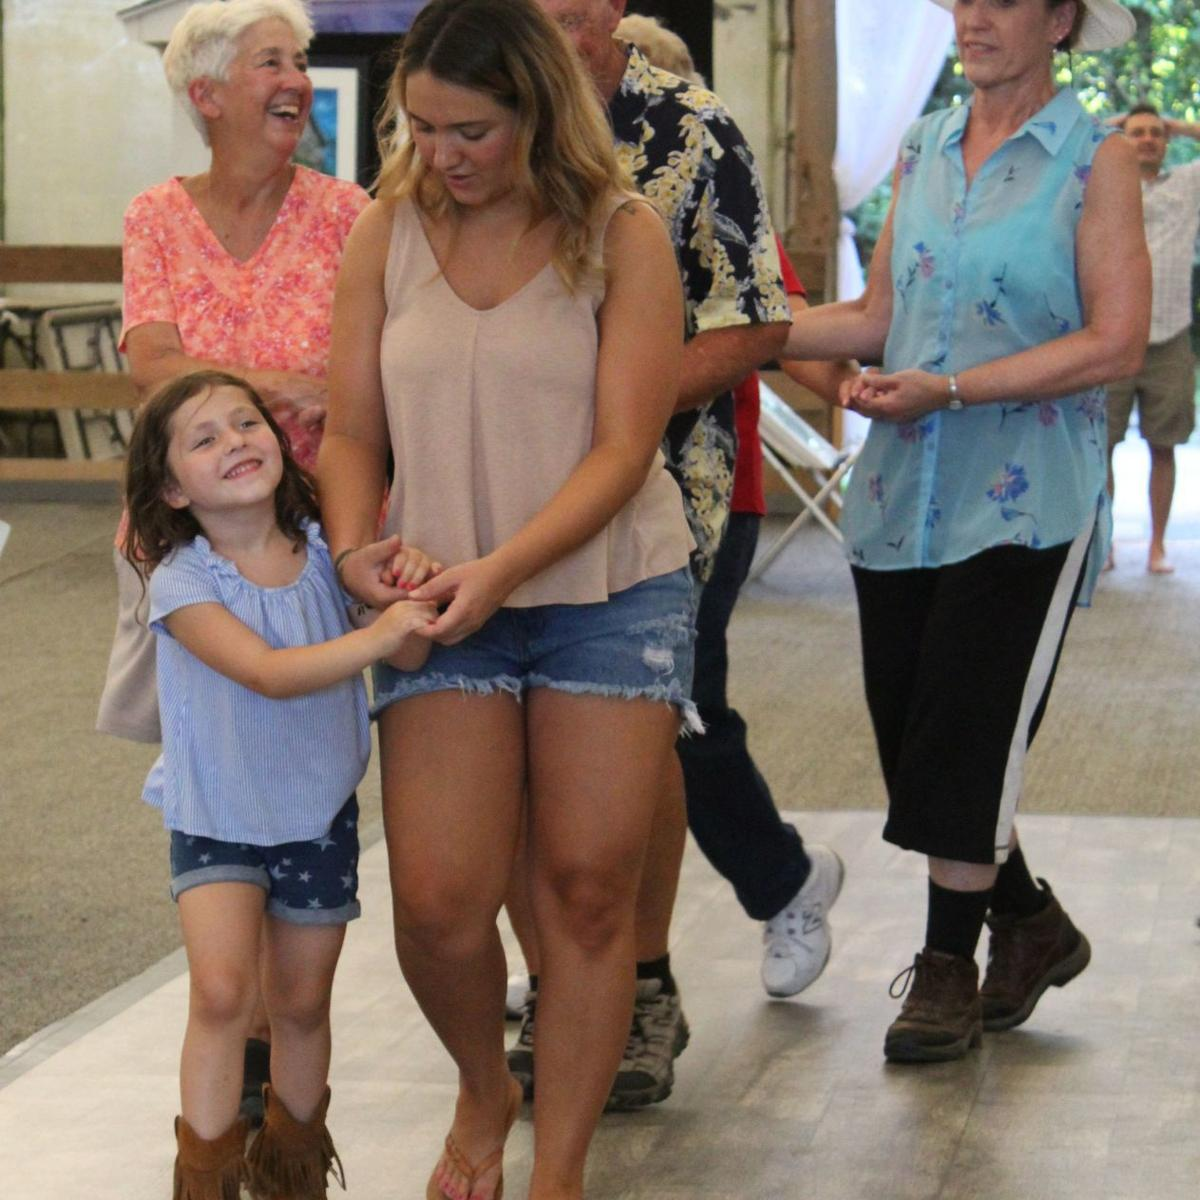 Old-fashioned fun at the Hoedown and Hootenanny